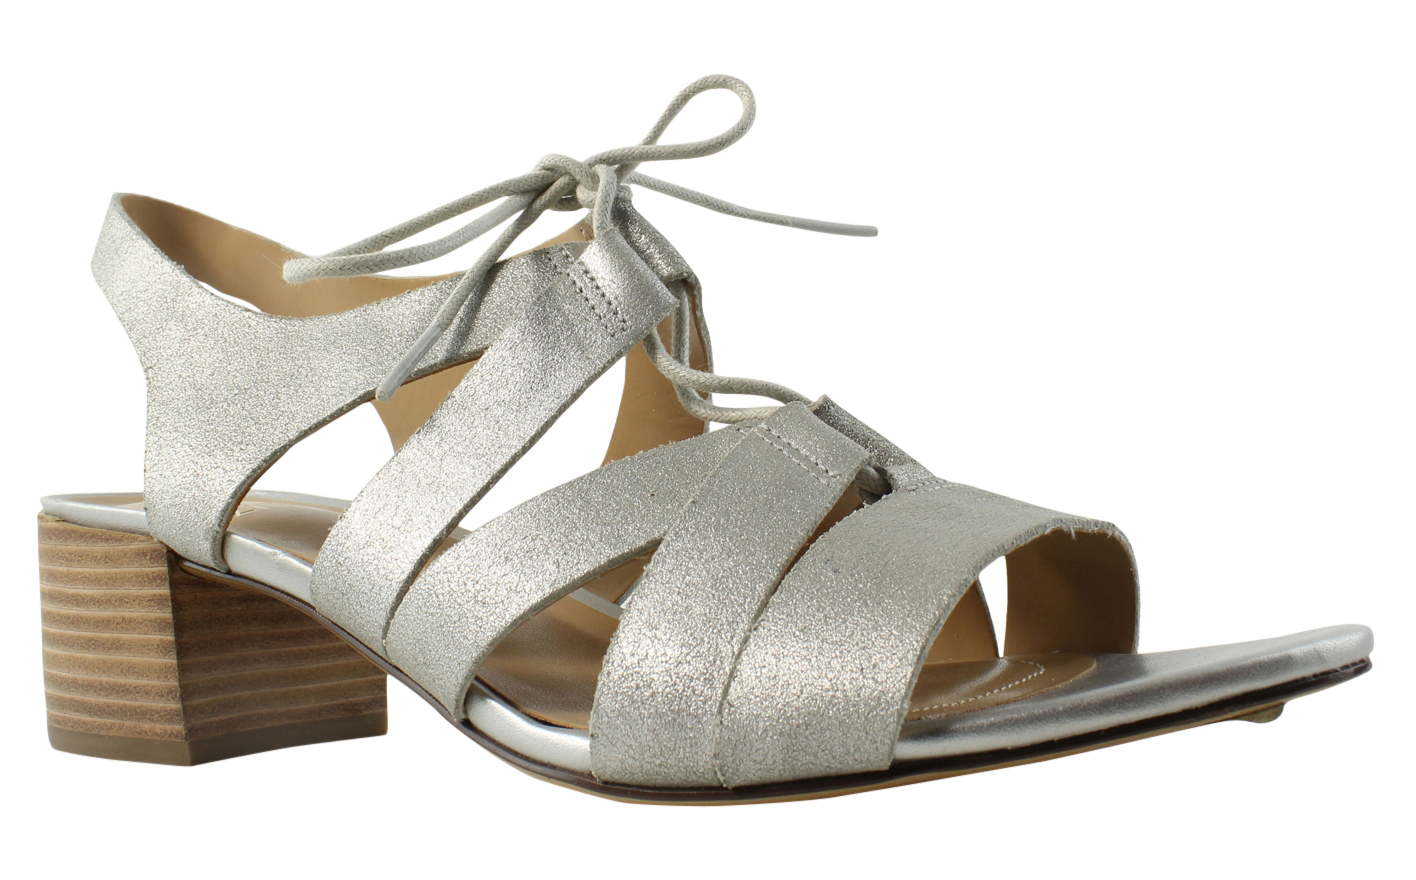 Naturalizer Womens Felicity Leather Open Toe Casual Slingback Sandals by Naturalizer